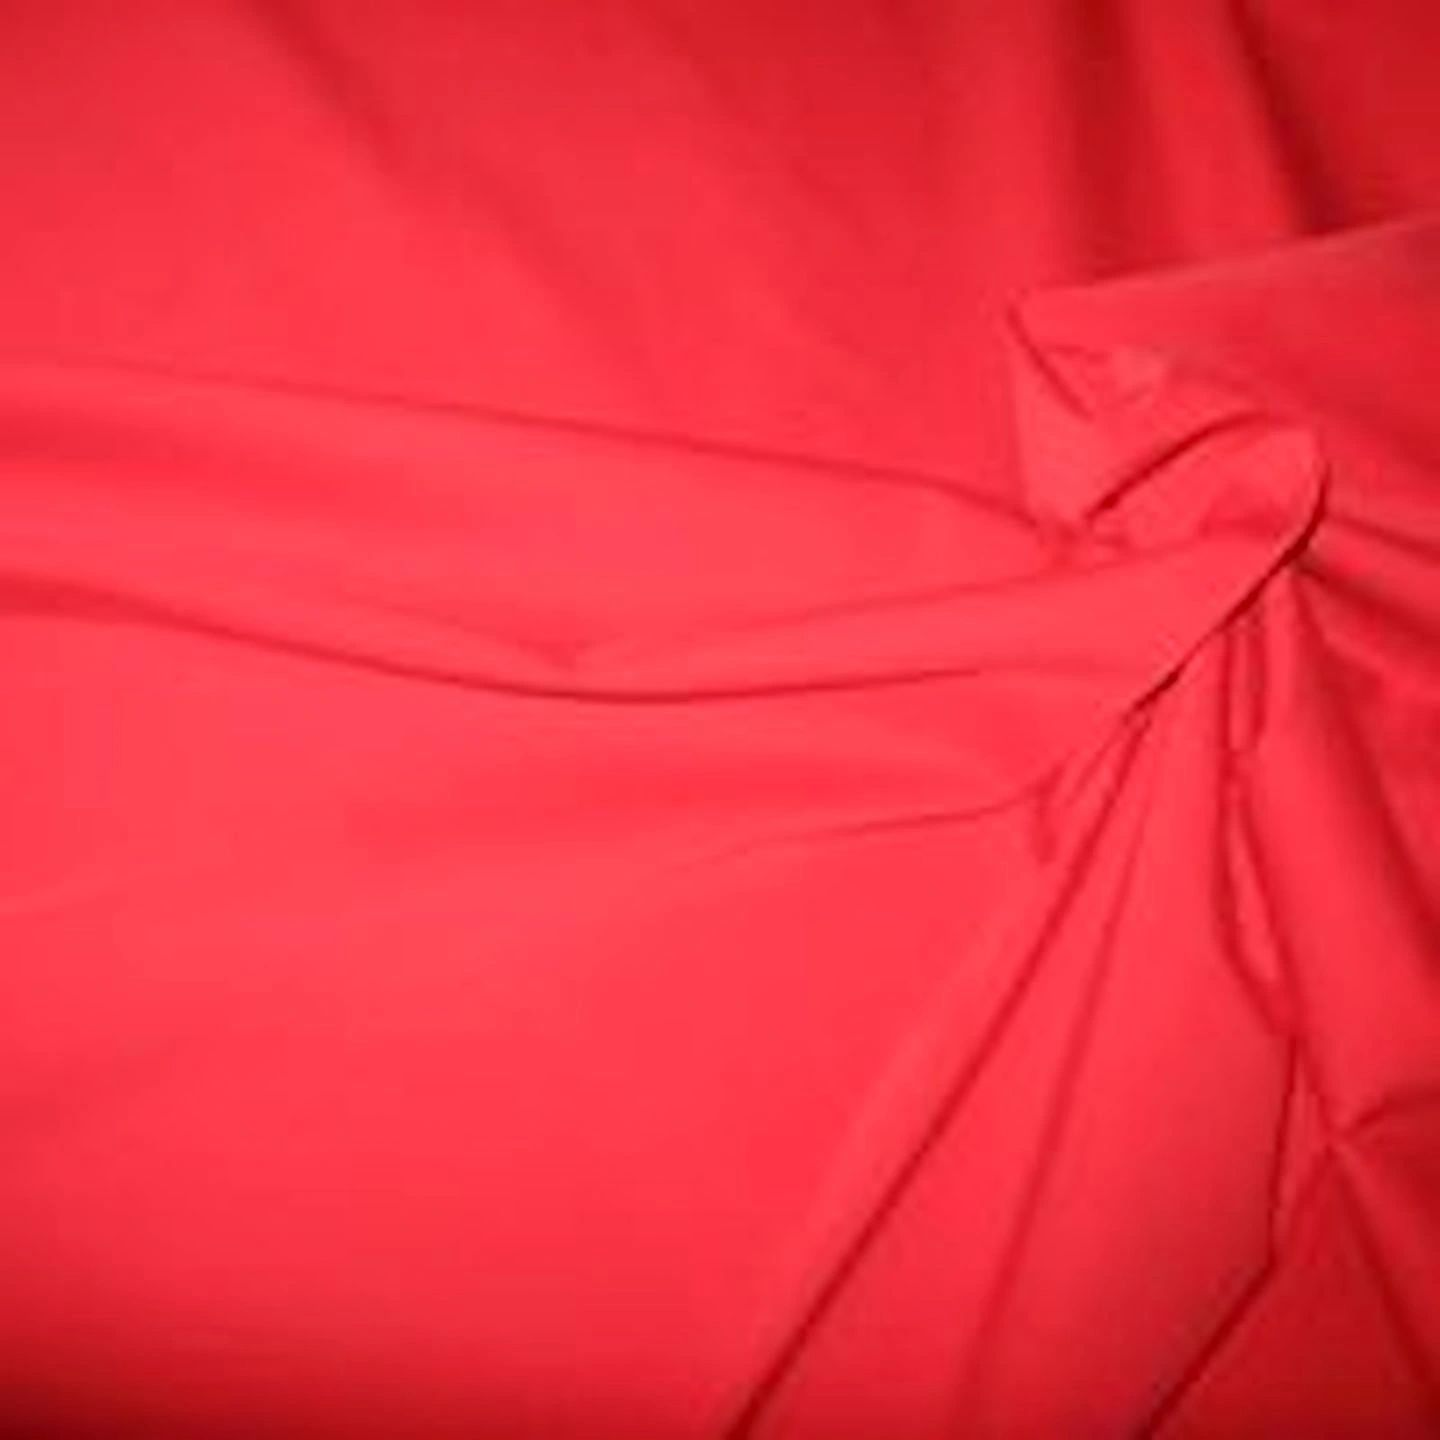 Theory Red Cotton Blend